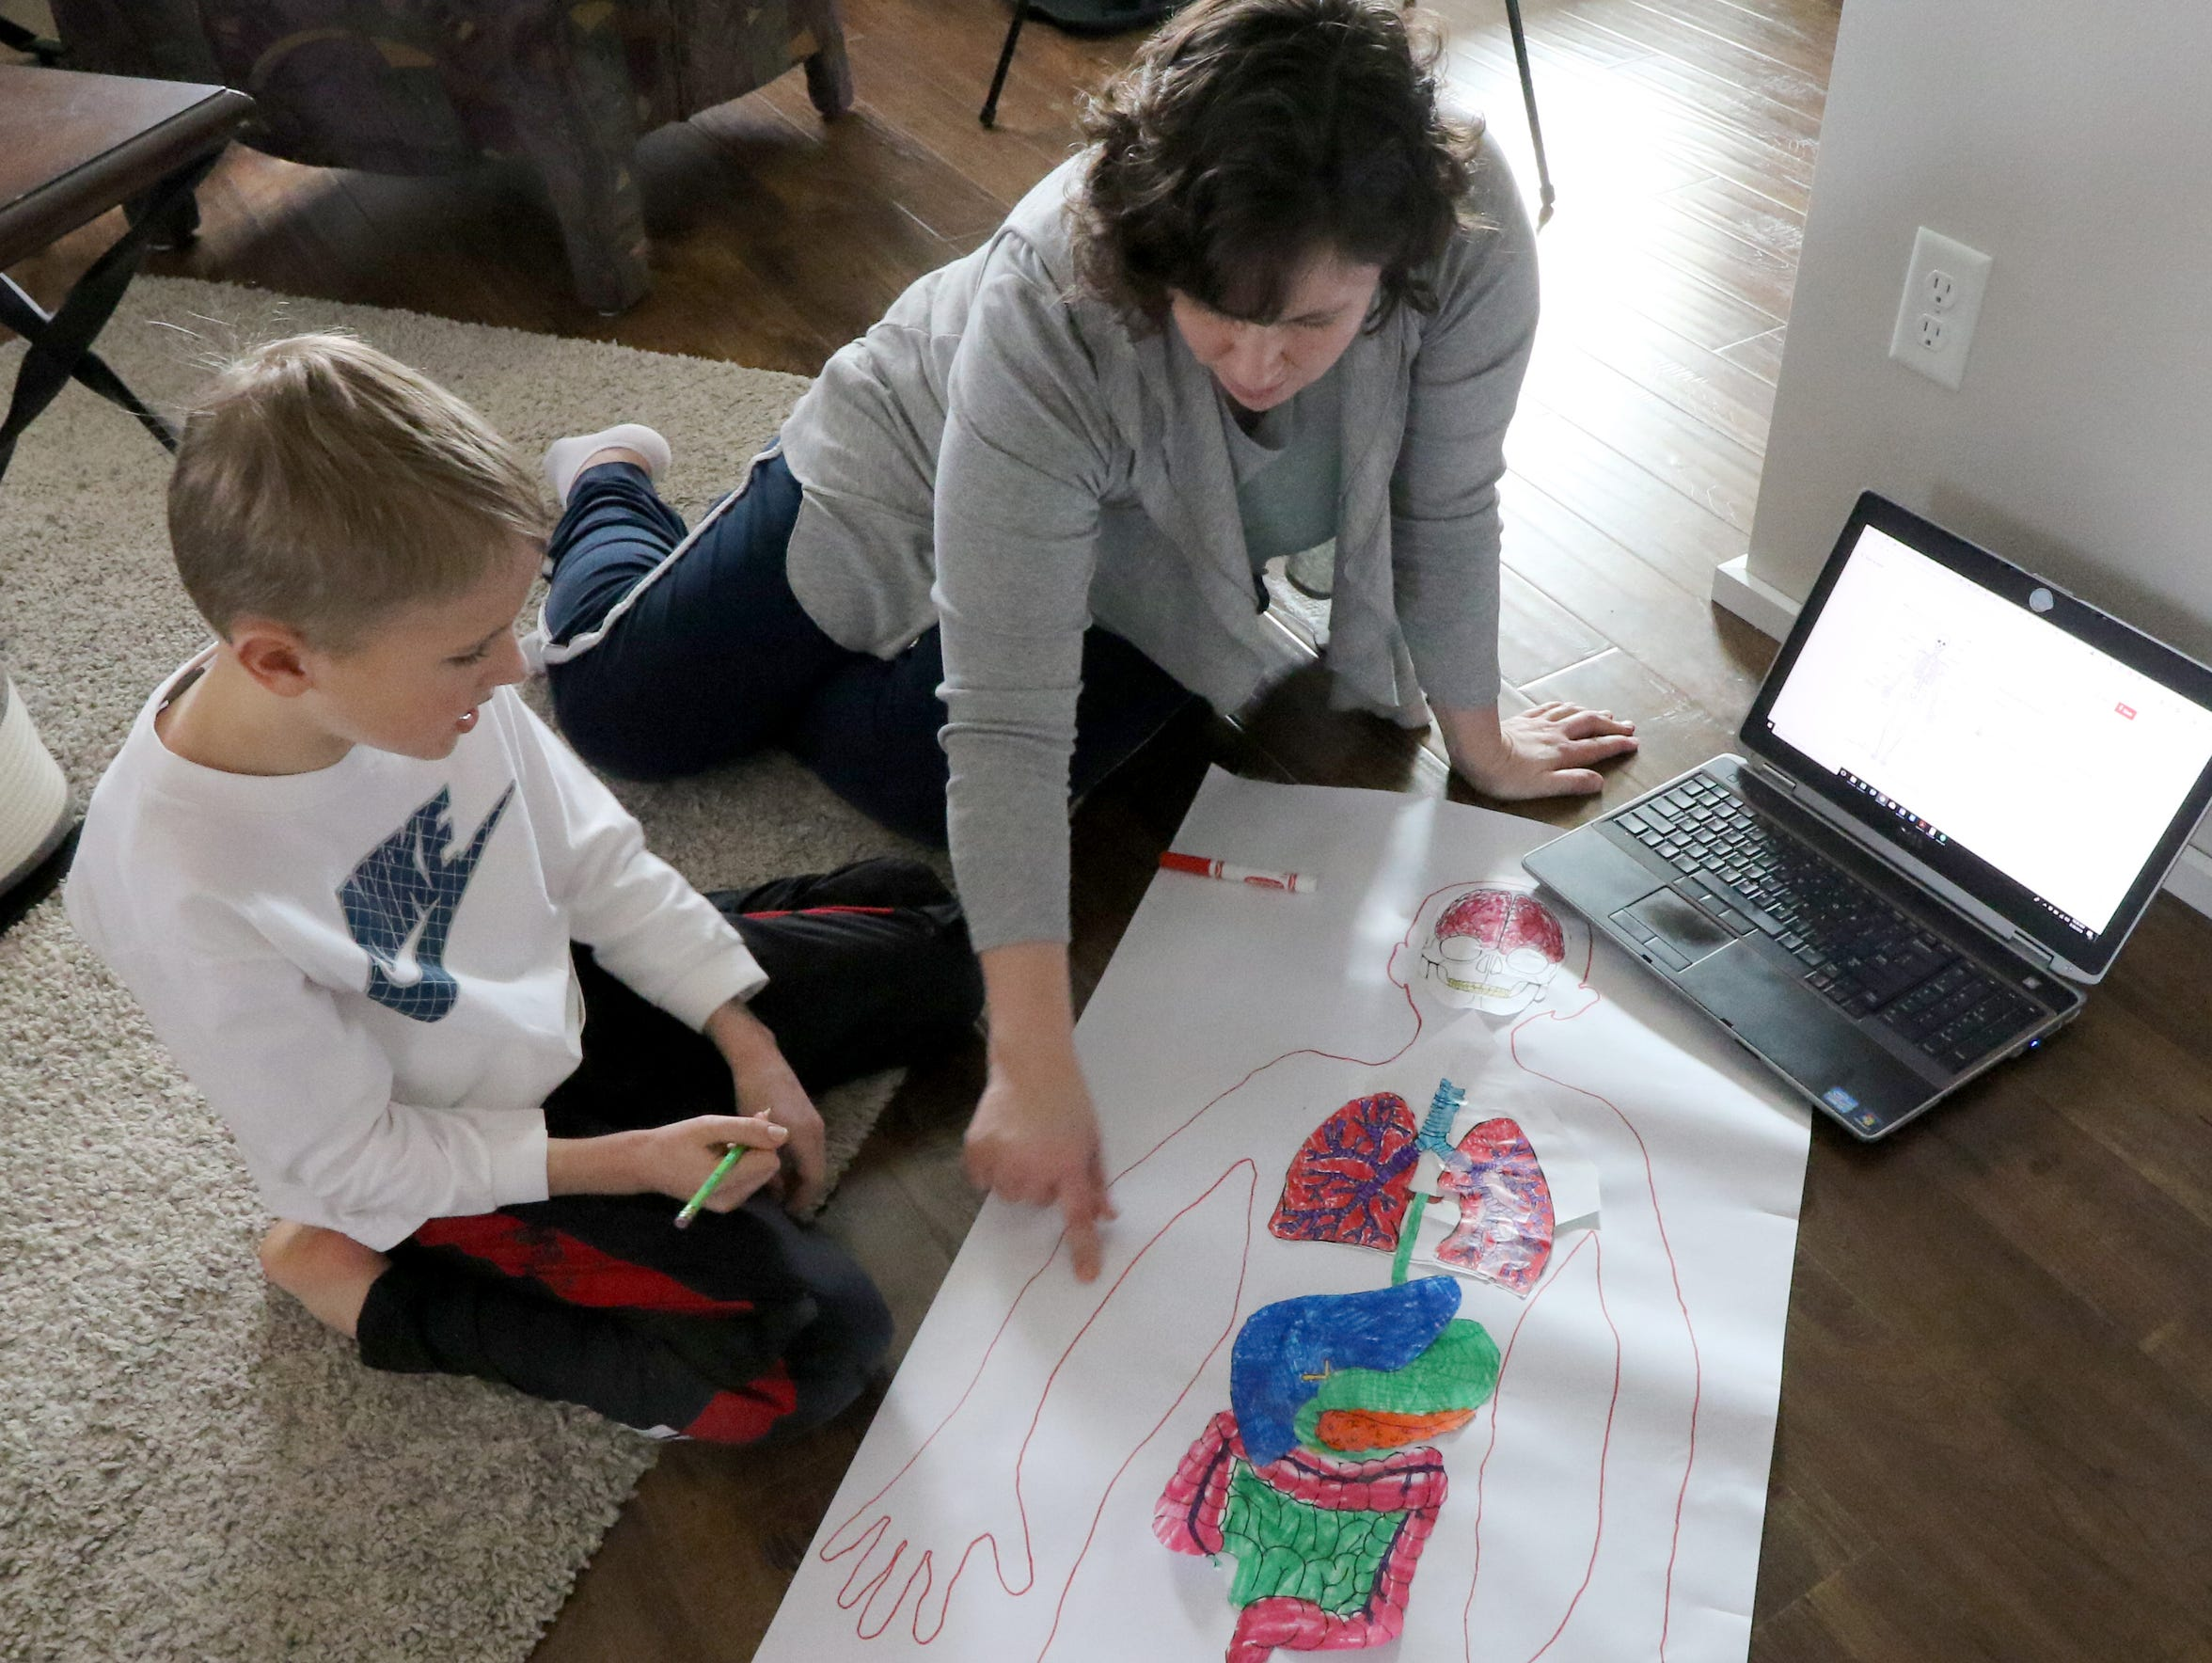 Colleen Boehm works with her son, Nick, 9, to identify major bones and joints on a full-size tracing of Nick for a unit on human anatomy.